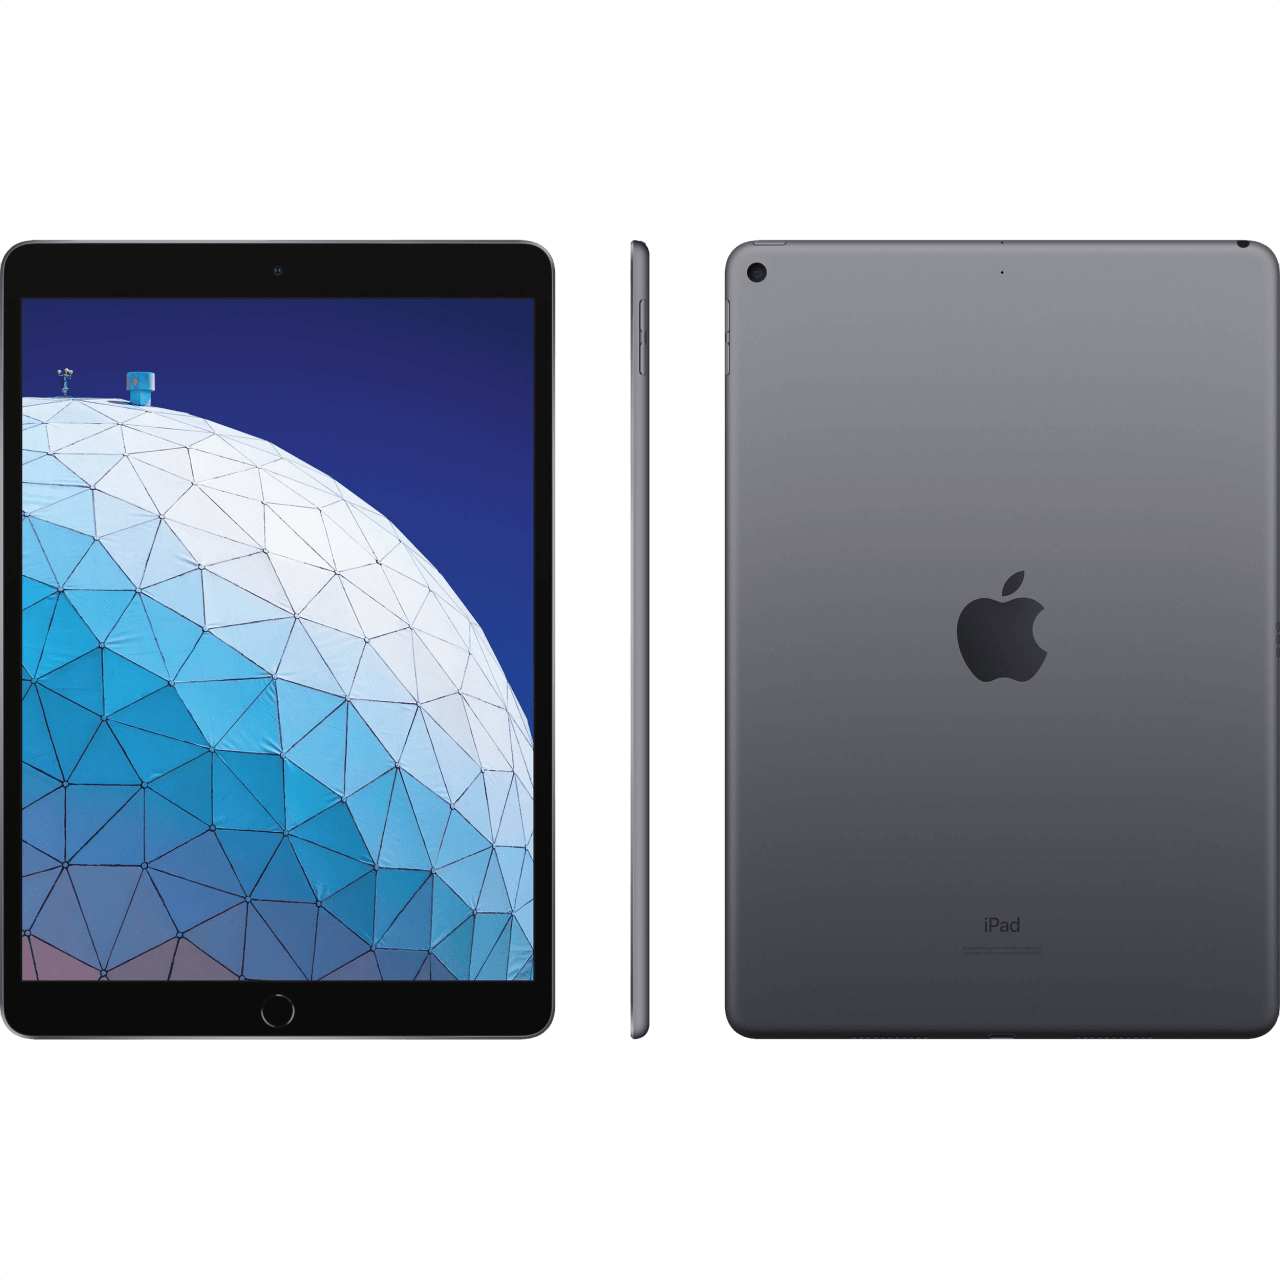 Space Grau Apple iPad Air Wi-Fi (2019).2